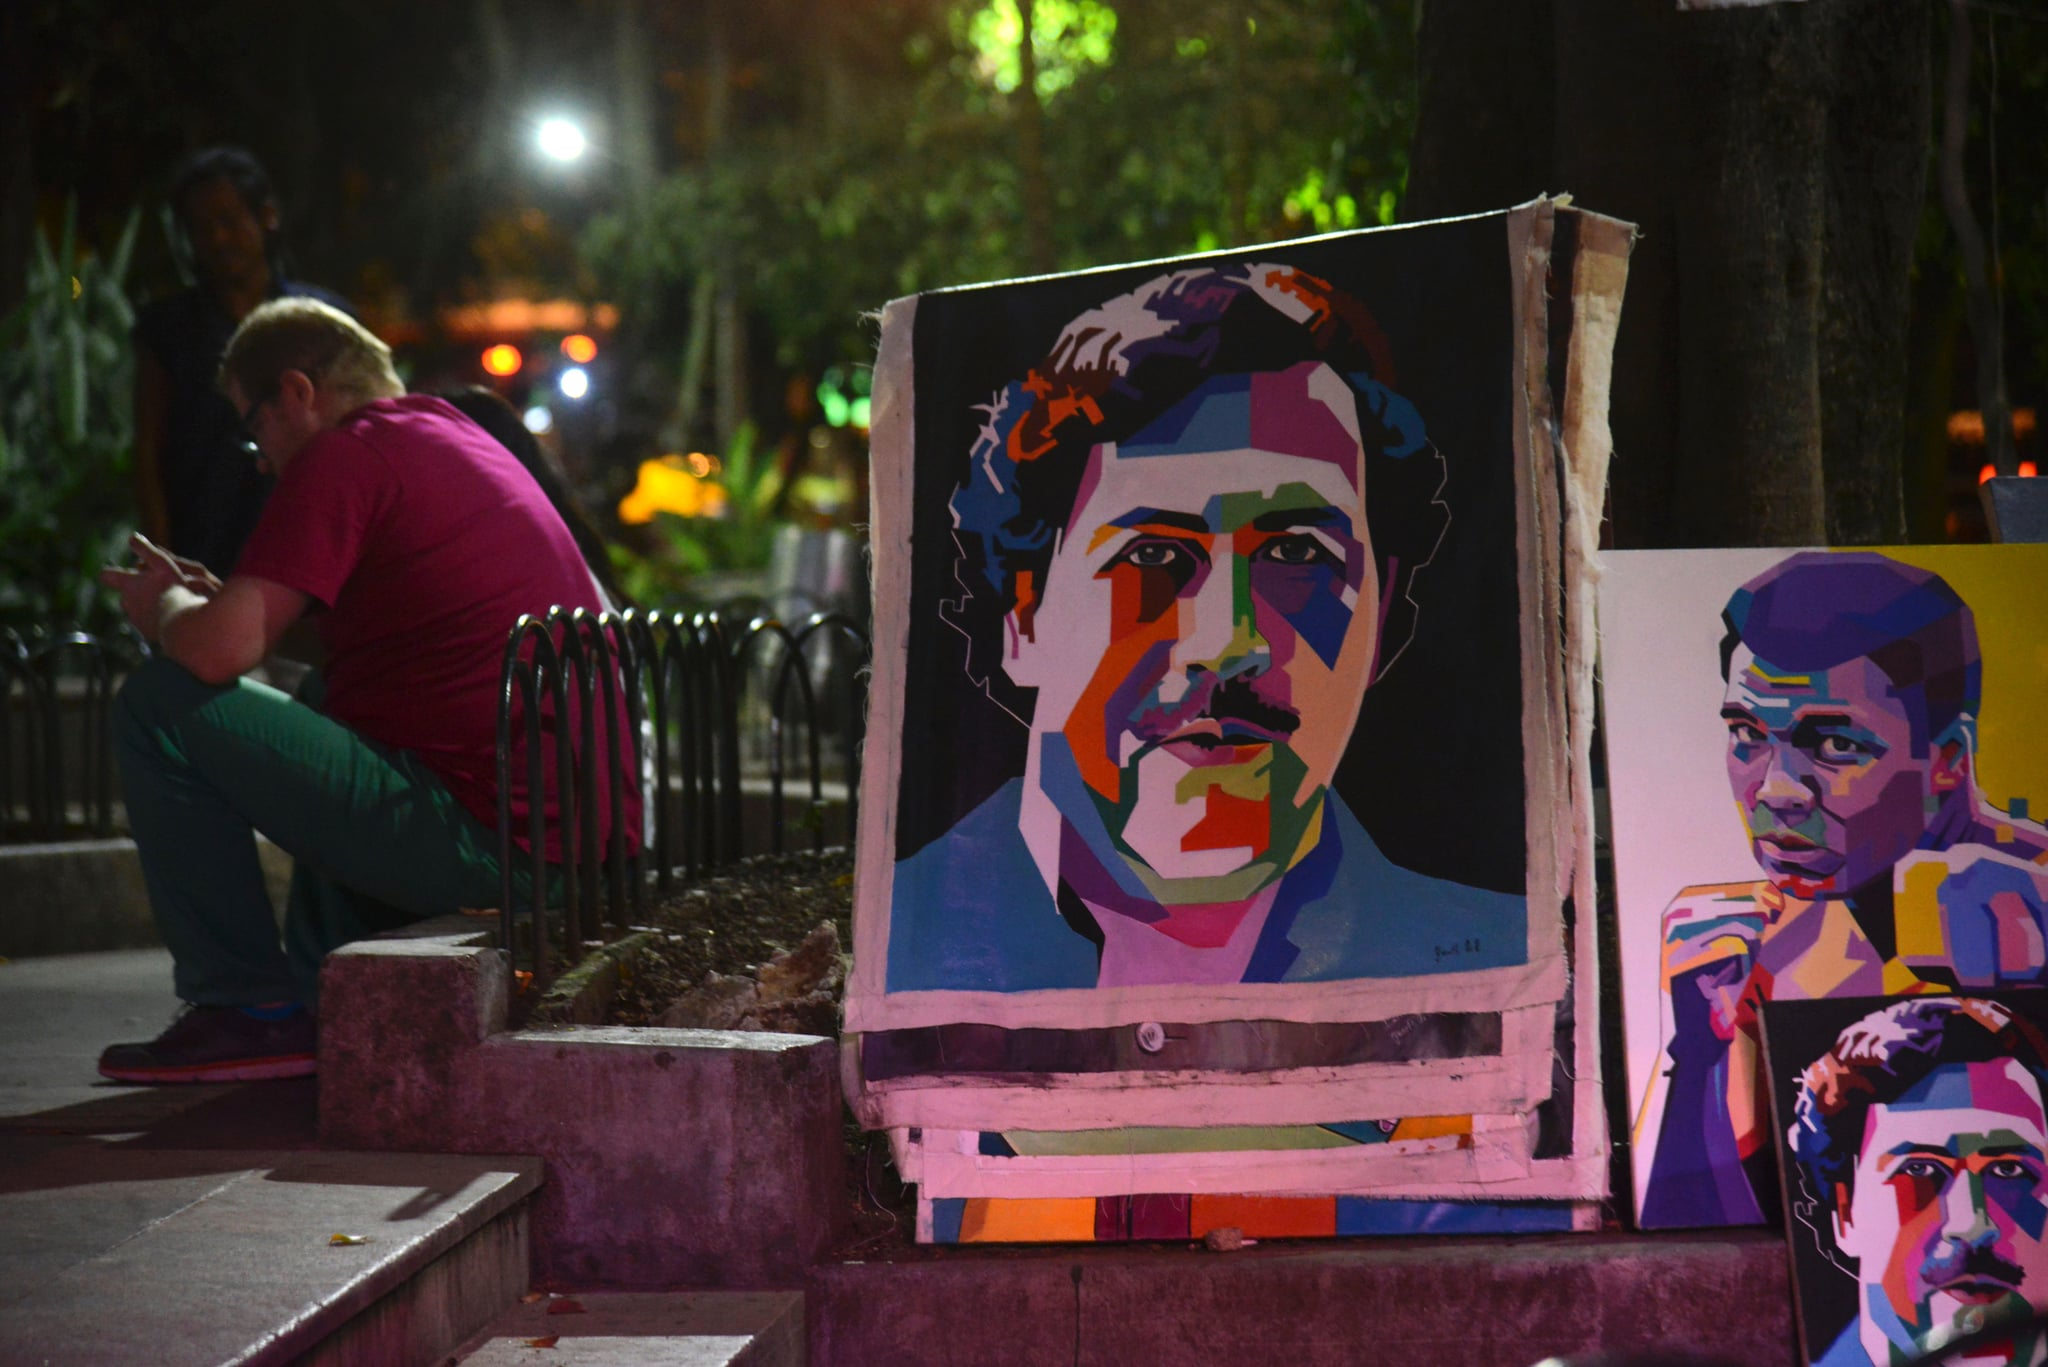 Paintings depicting late Colombian drug lord Pablo Escobar are on display at Lleras Park in  Medellin, Antioquia department, Colombia on July 21, 2016.The paintings are made by Colombian artist Wilson Rojas, who sells them by the equivalent of 120-130 dollars each. / AFP / RAUL ARBOLEDA        (Photo credit should read RAUL ARBOLEDA/AFP via Getty Images)